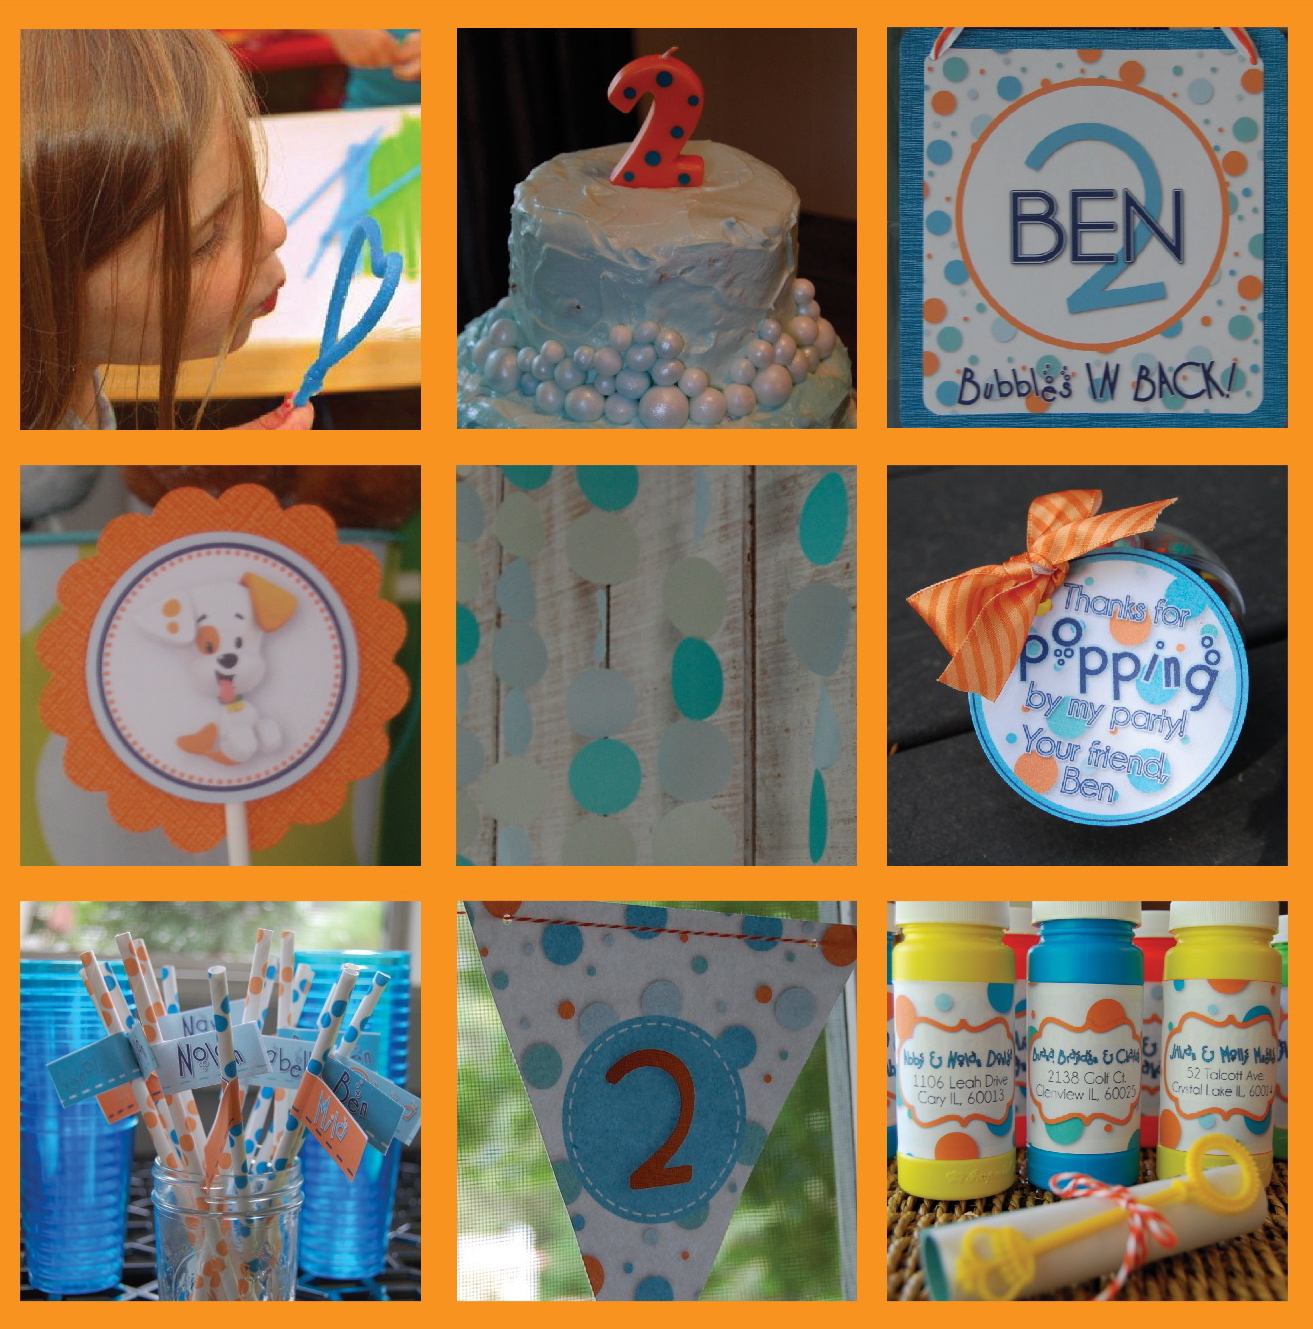 Tgf Decoration Beth Kruse Custom Creations Bubble Party